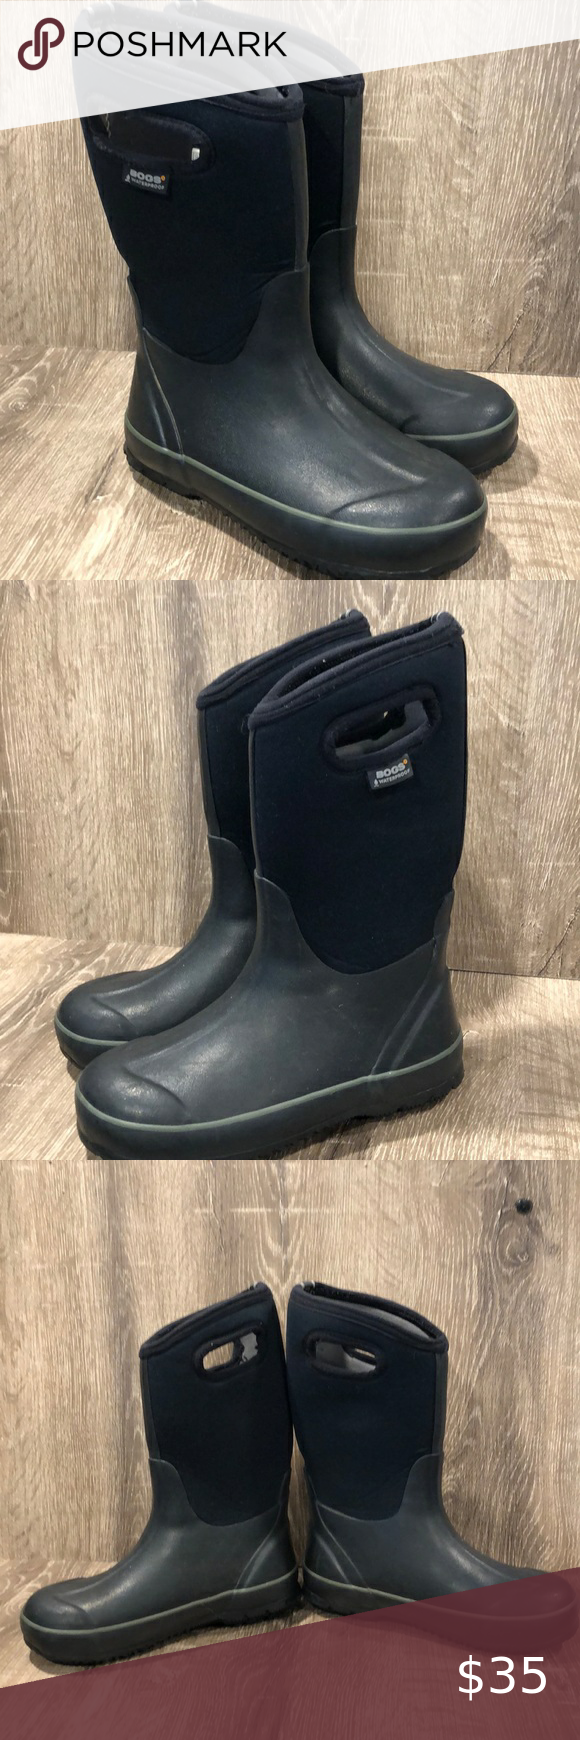 Bogs -30 Boots in 2020   Boots, Shoe